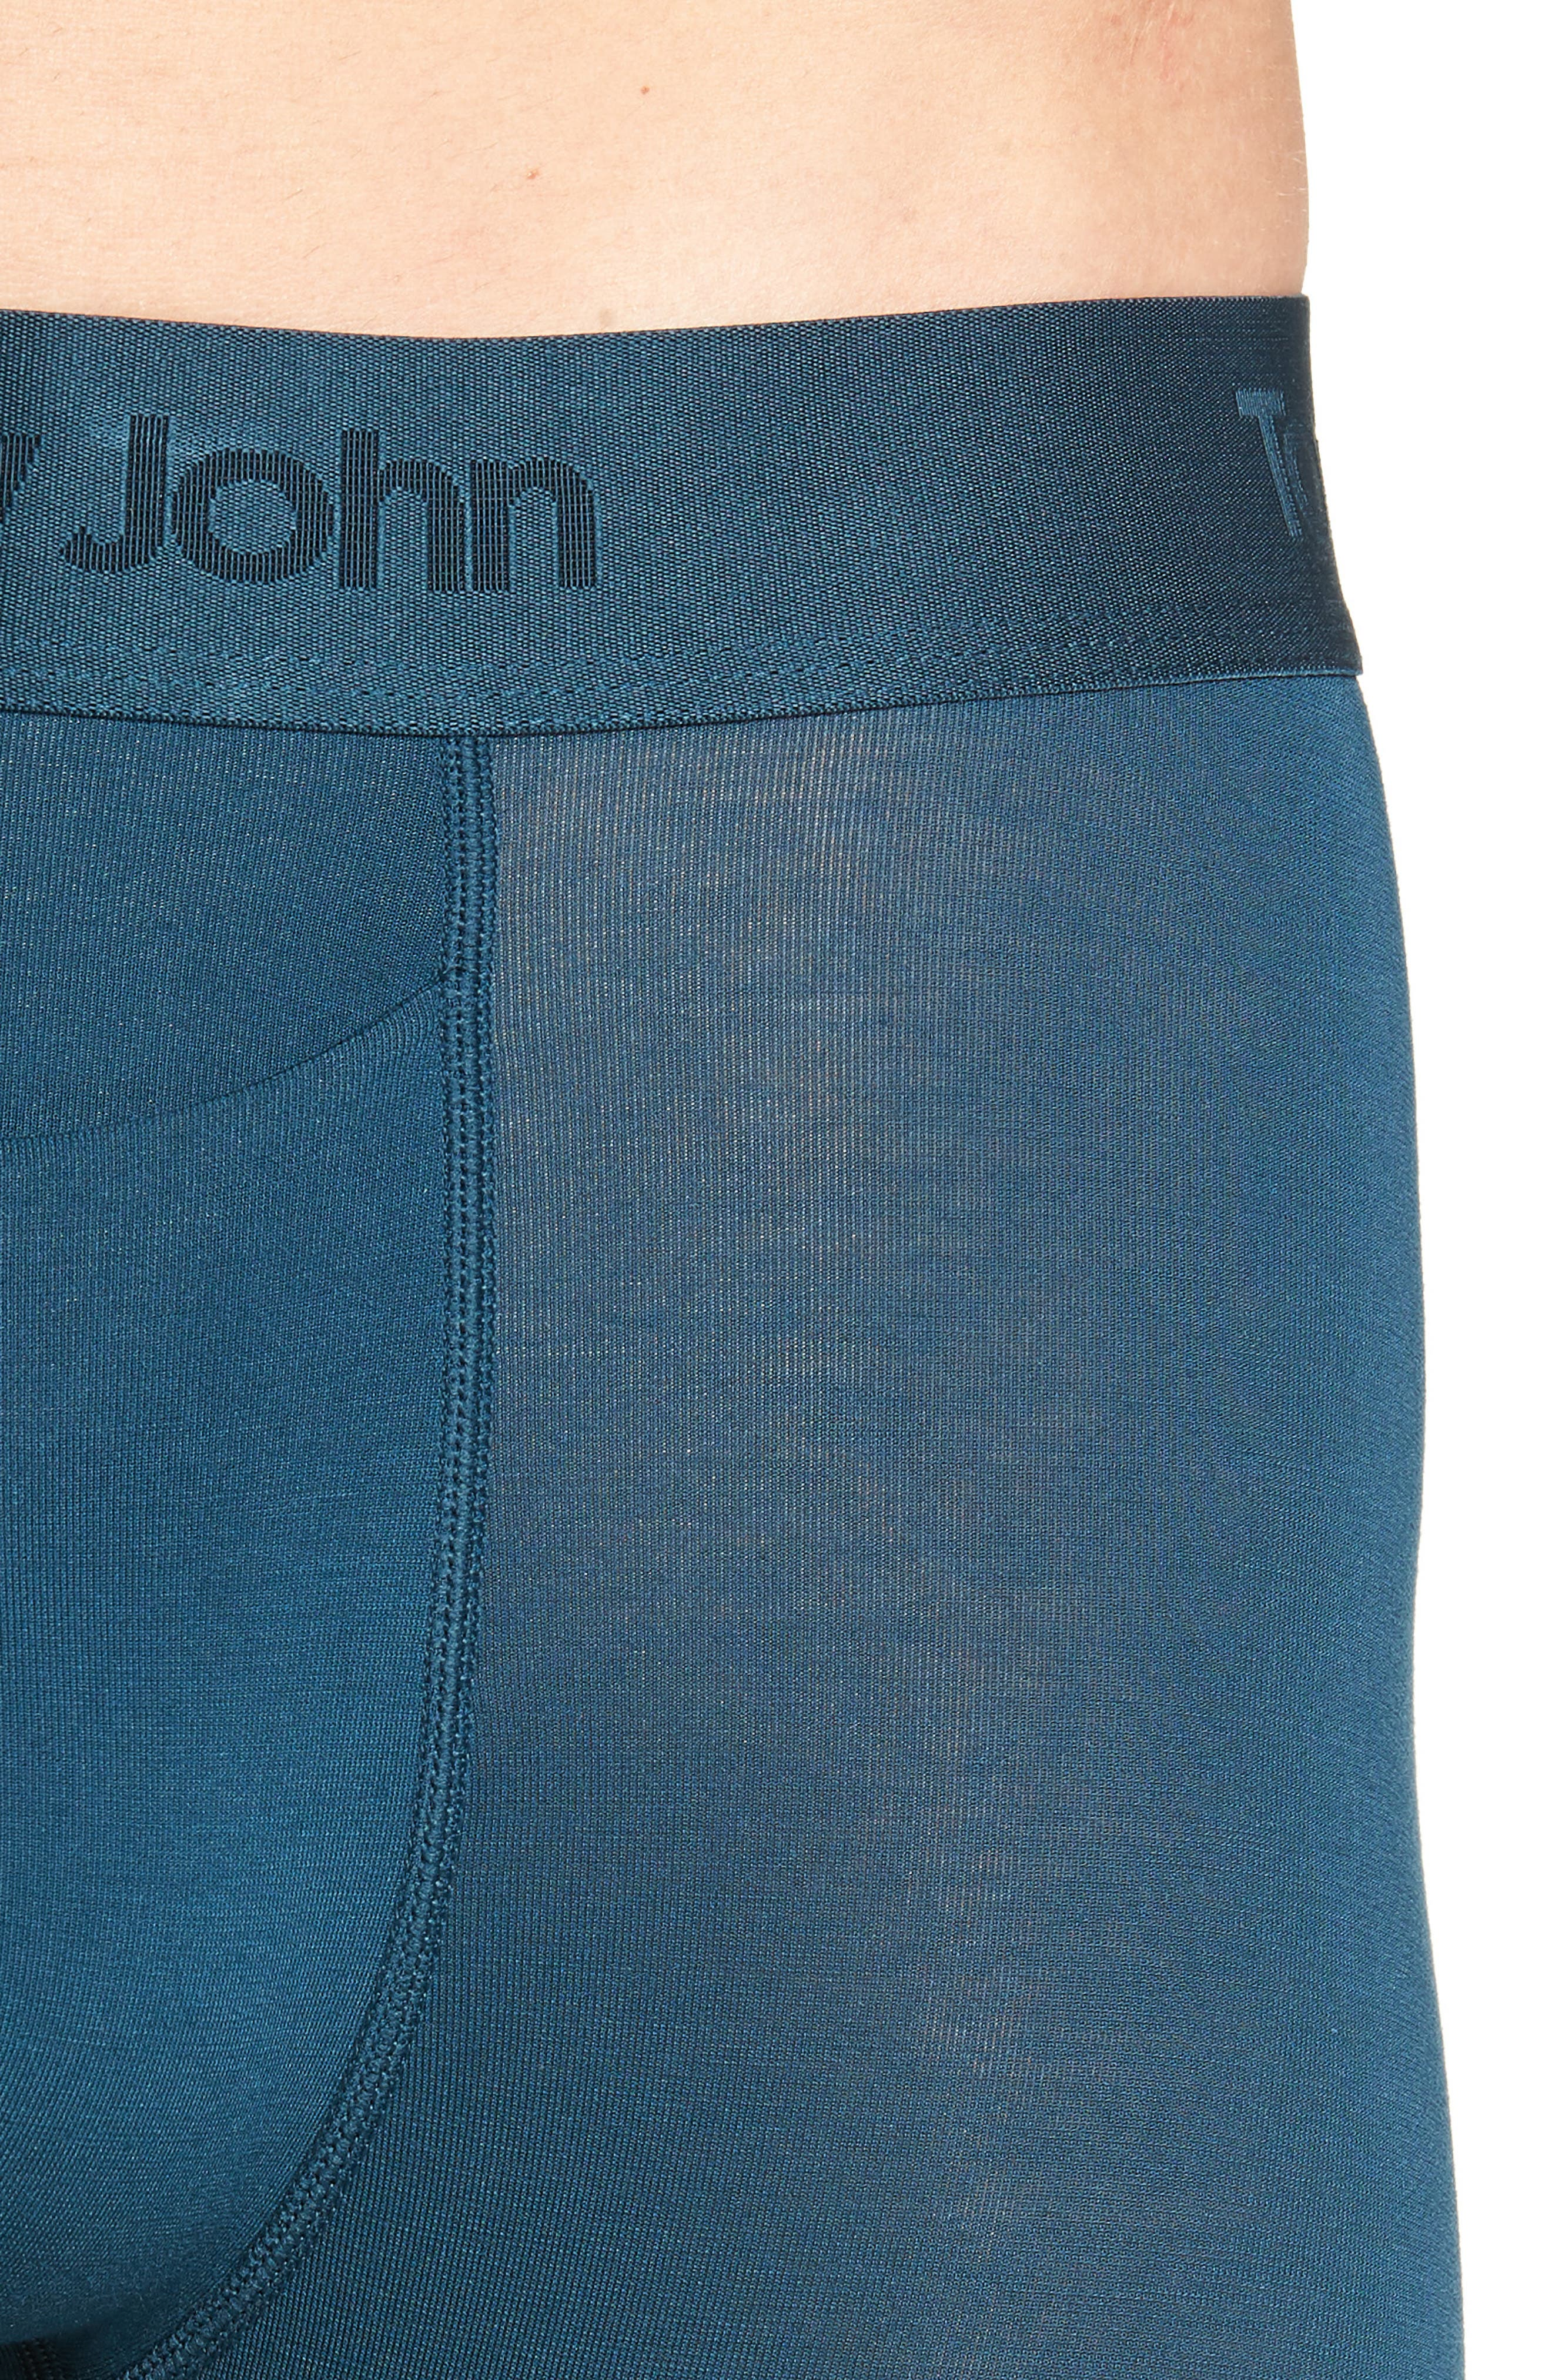 Second Skin Boxer Briefs,                             Alternate thumbnail 4, color,                             REFLECTING POND